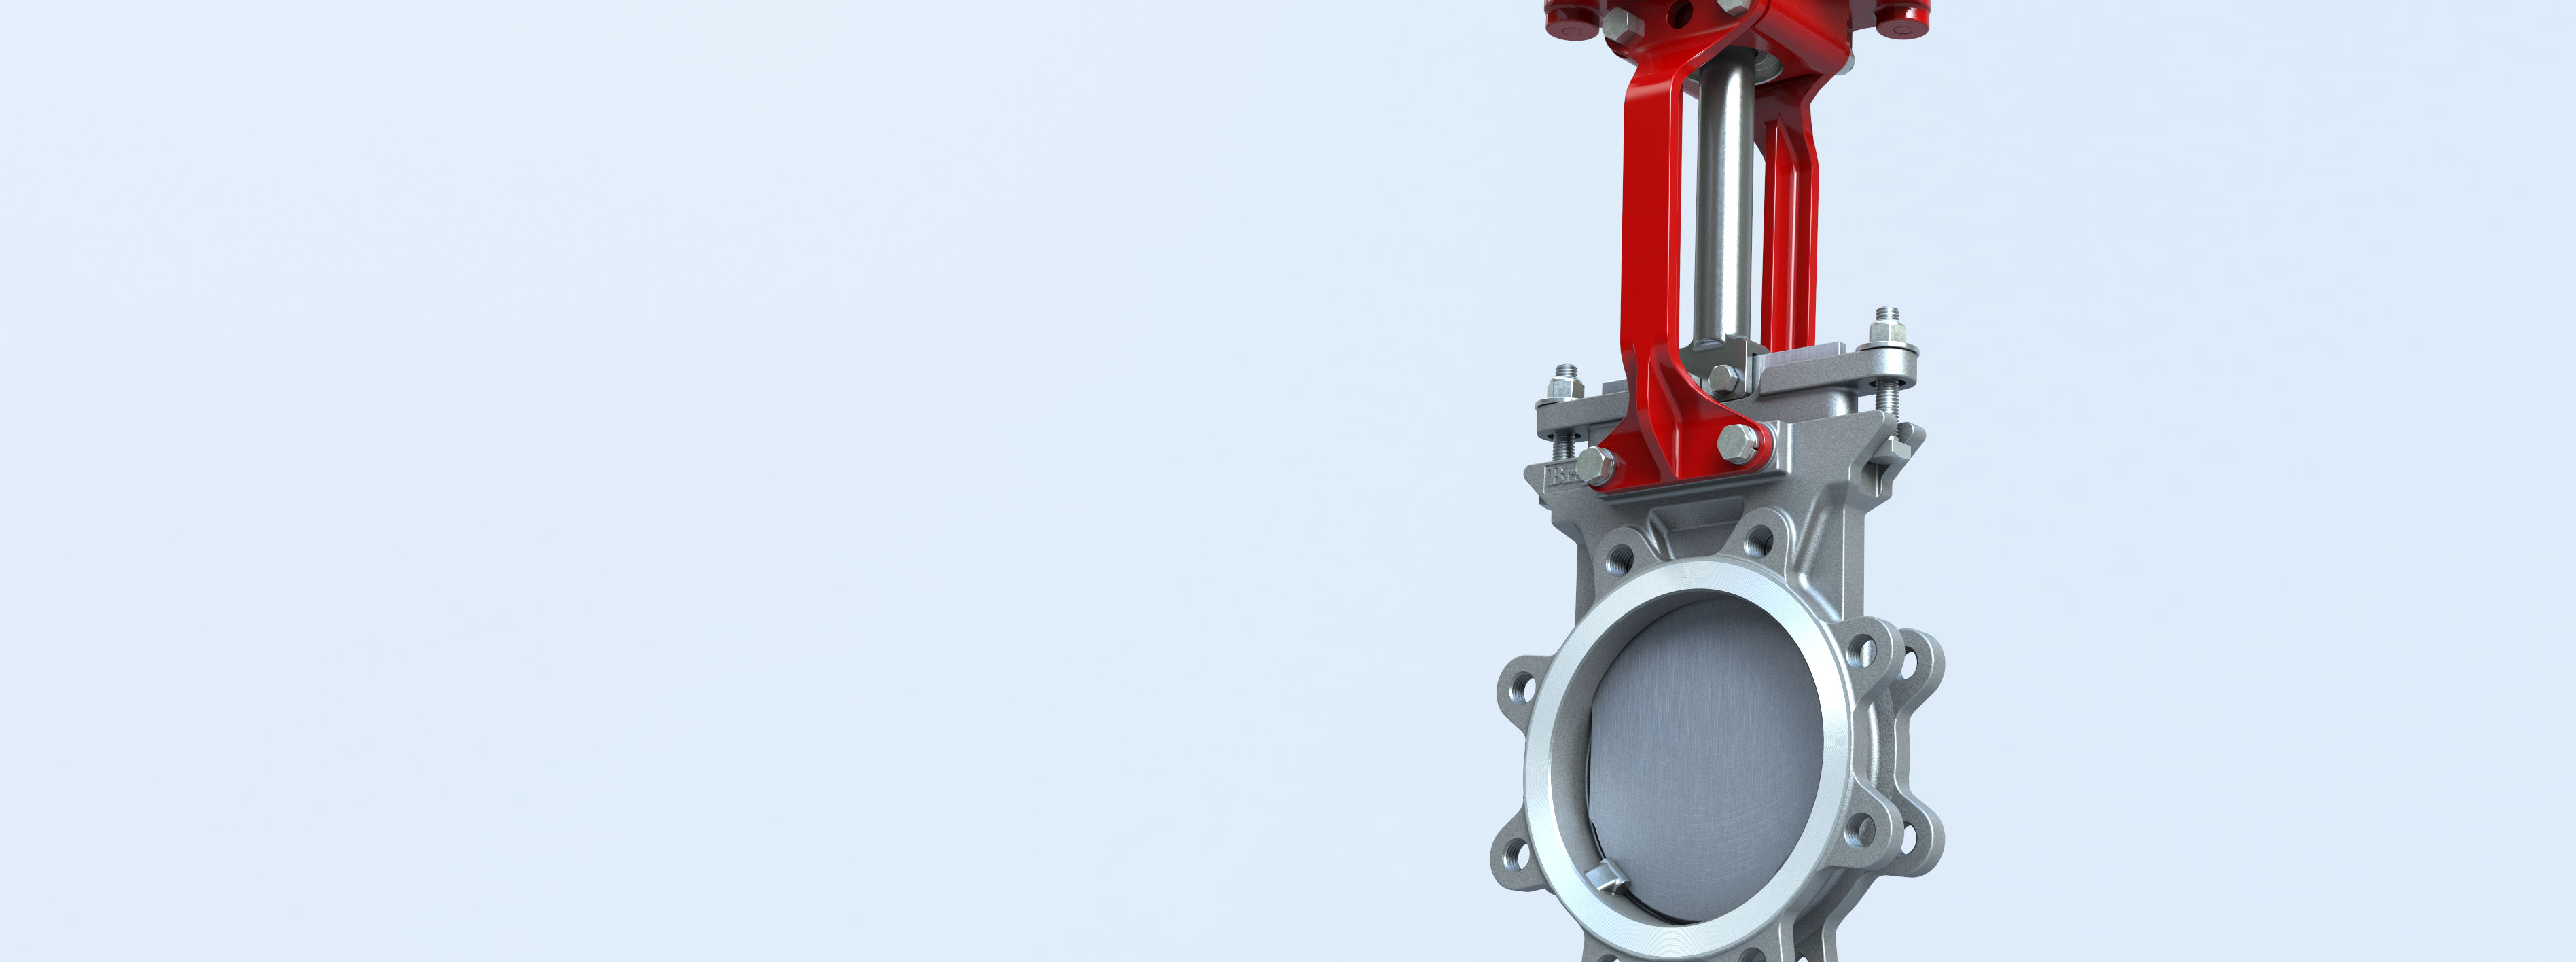 Knife Gate Valve Series 940 Unidirectional Bray